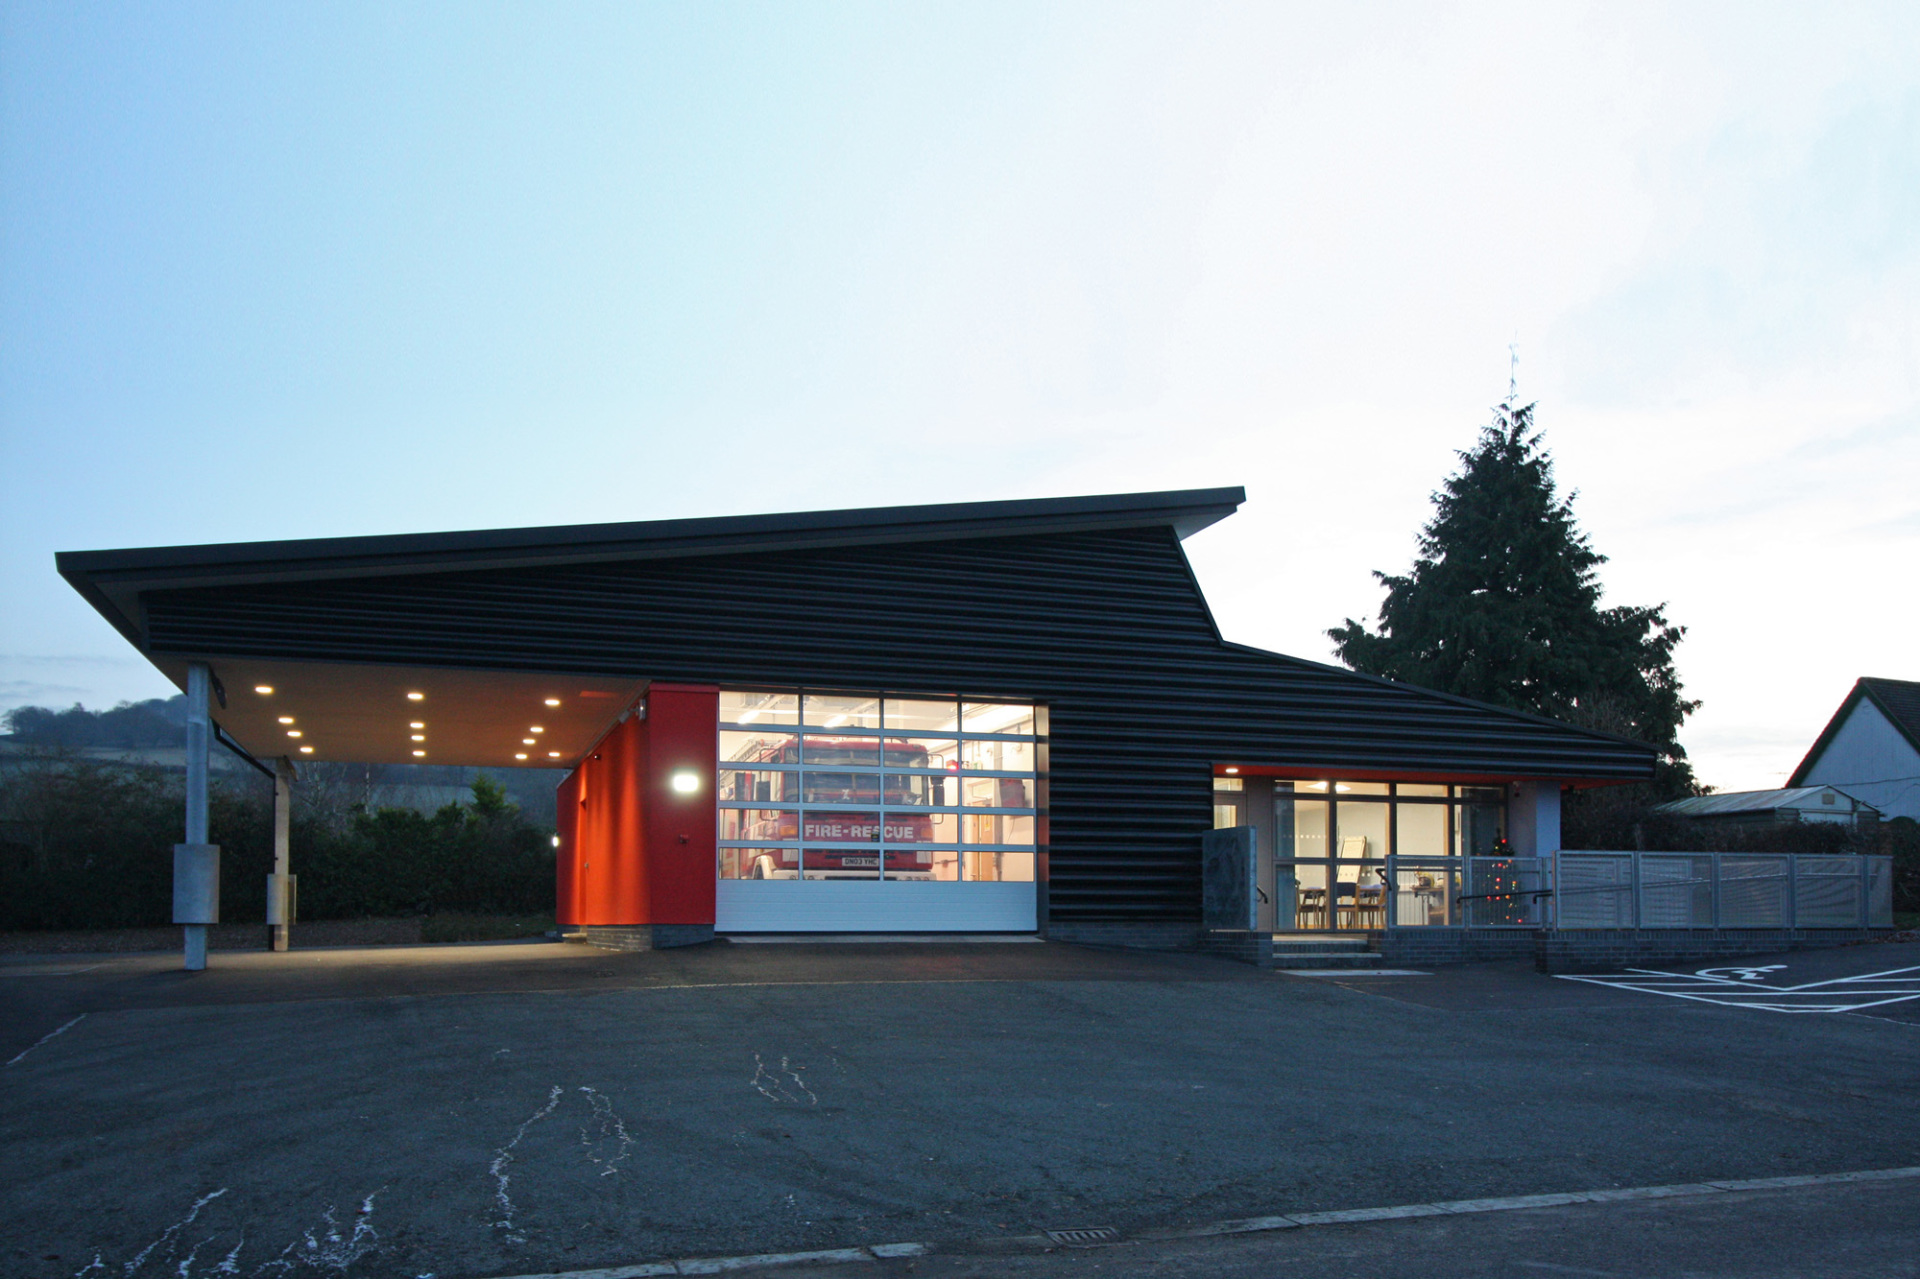 Clun Fire Station by BHN Architects